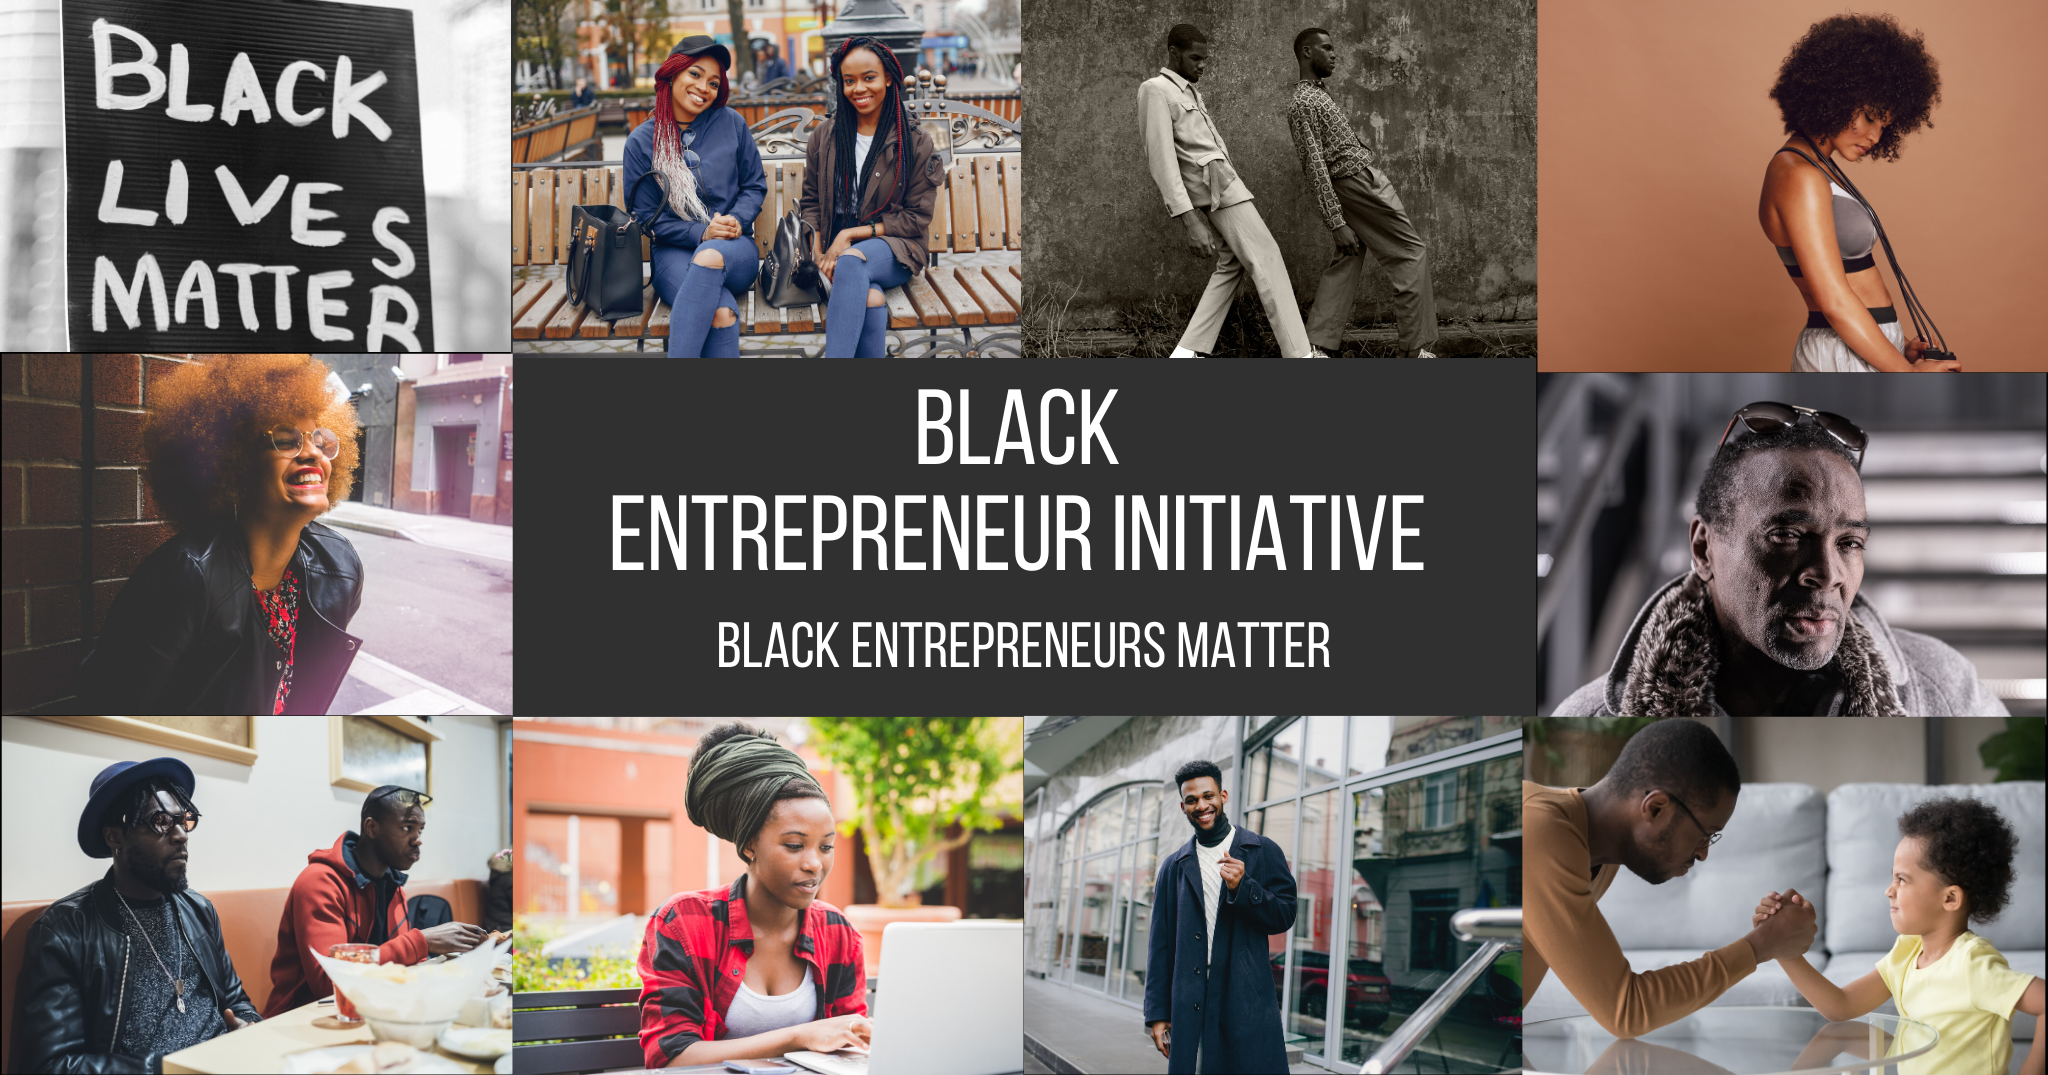 Community Leaders, Philanthropists and Business Activists Join Forces to Launch the Black Entrepreneur Initiative